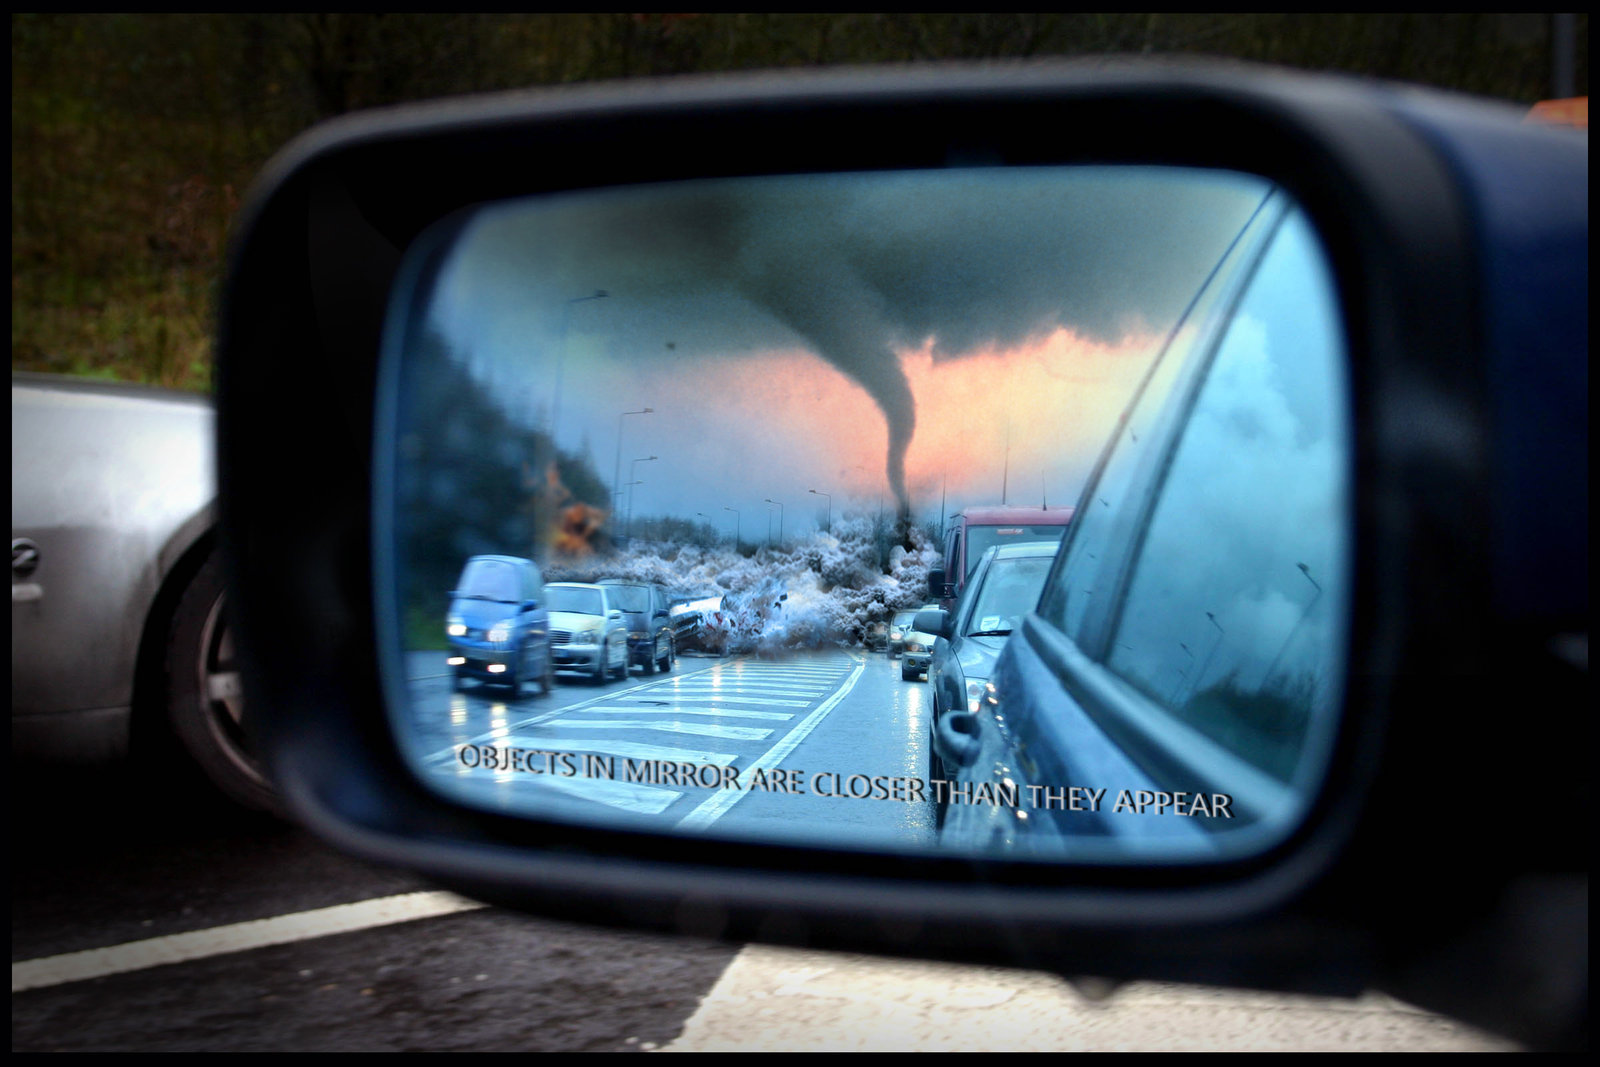 objects_in_mirror_are_closer_than_they_appear_by_pricoky-d5zwdrp.jpg